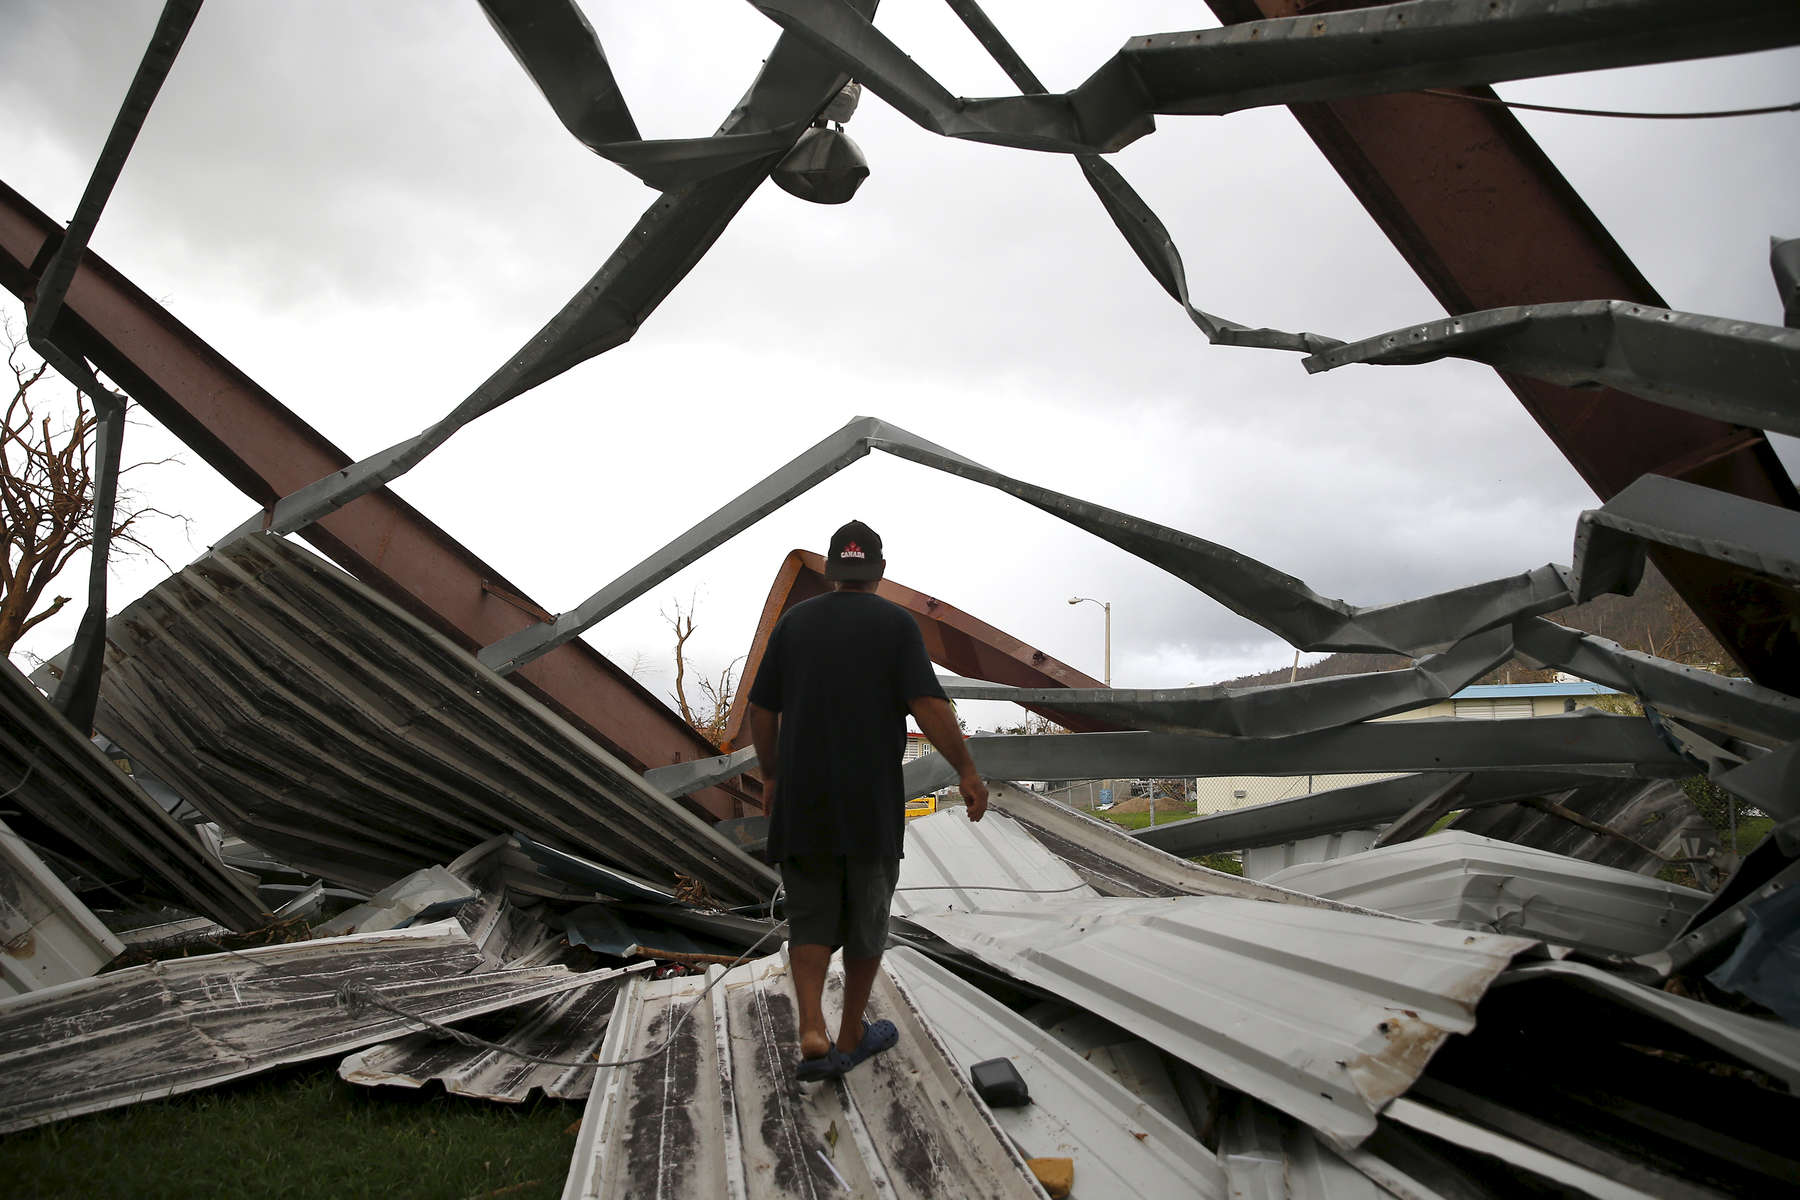 Yabucoa, Puerto Rico -- 9/29/2017 -  In Yabucoa where Hurricane Maria first made landfall, the metal roof and viewing stands from a basketball court across the street were deposited onto Carmen Charriez's home. The family of five, including a nephew, rode out the storm by hiding in a hallway for hours. Nine days later they were still sleeping in plastic lawn furniture in their garage, fearful of their roof collapsing.